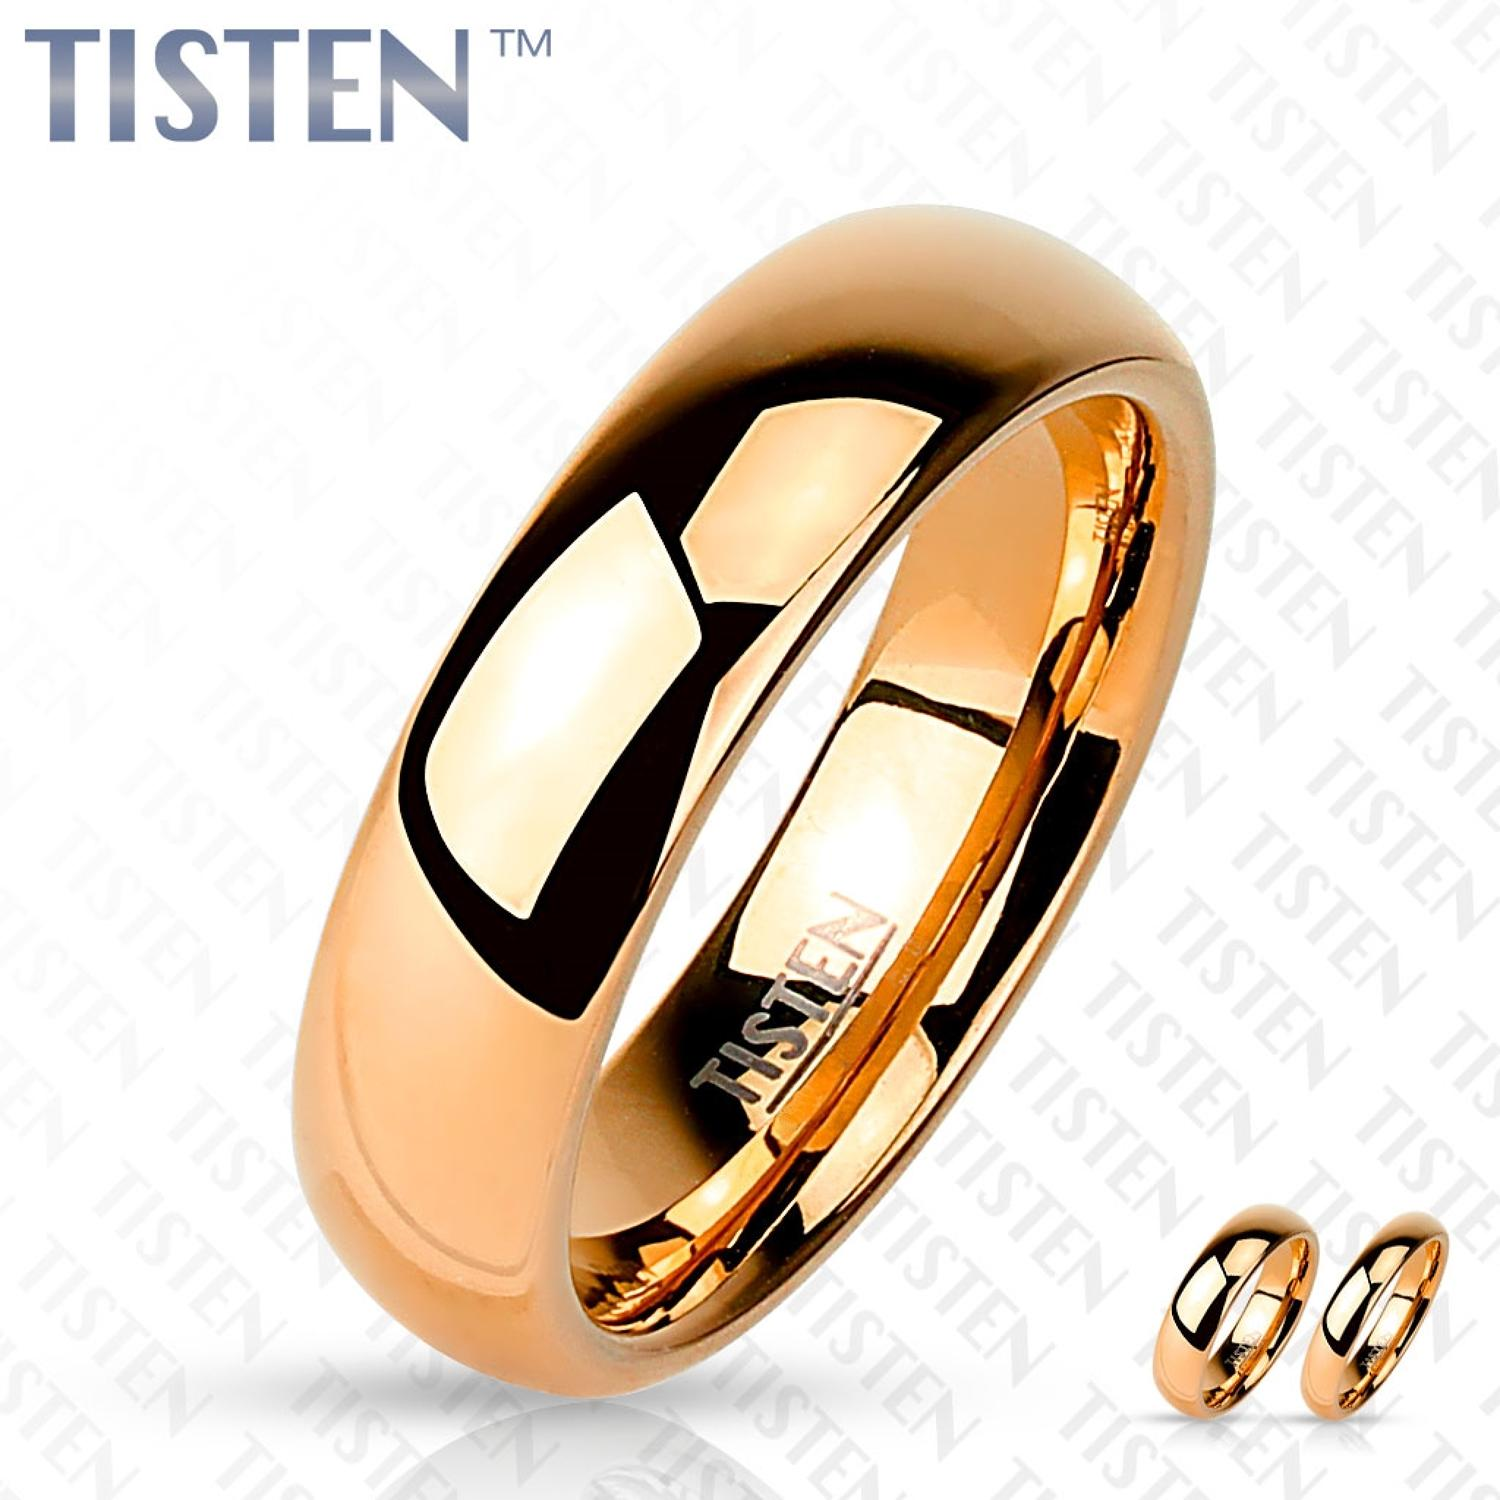 Glossy Mirror Polished Rose Gold IP Tisten Ring